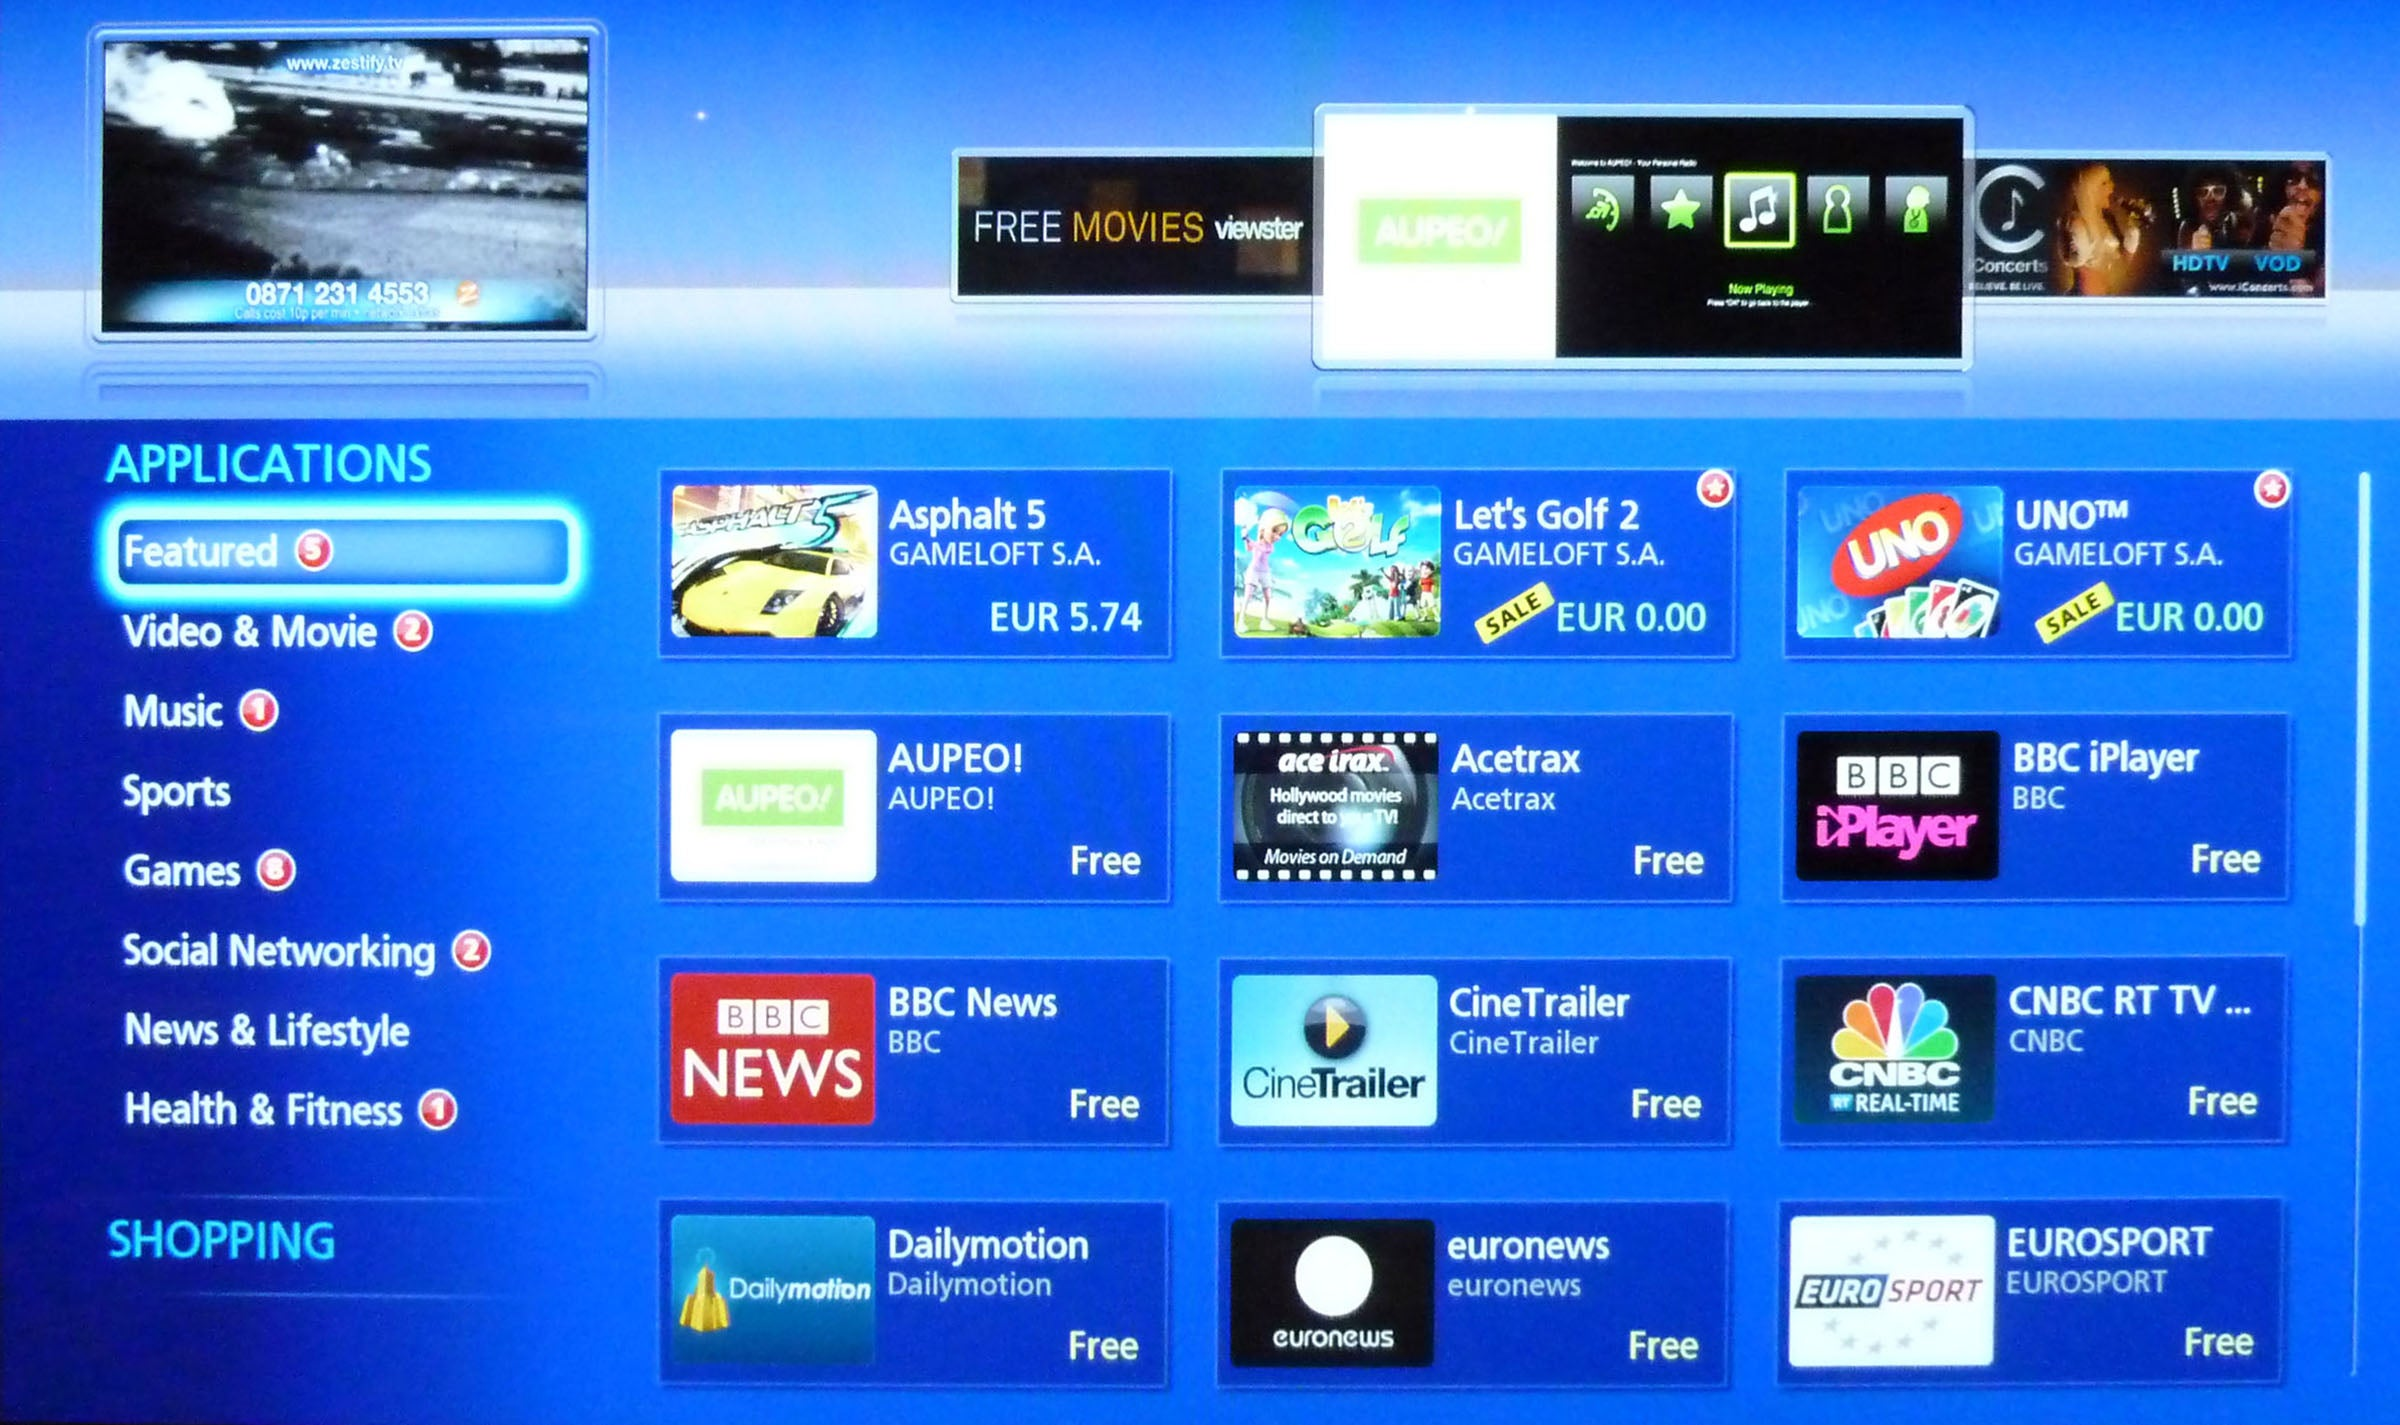 Panasonic Smart Tv Apps